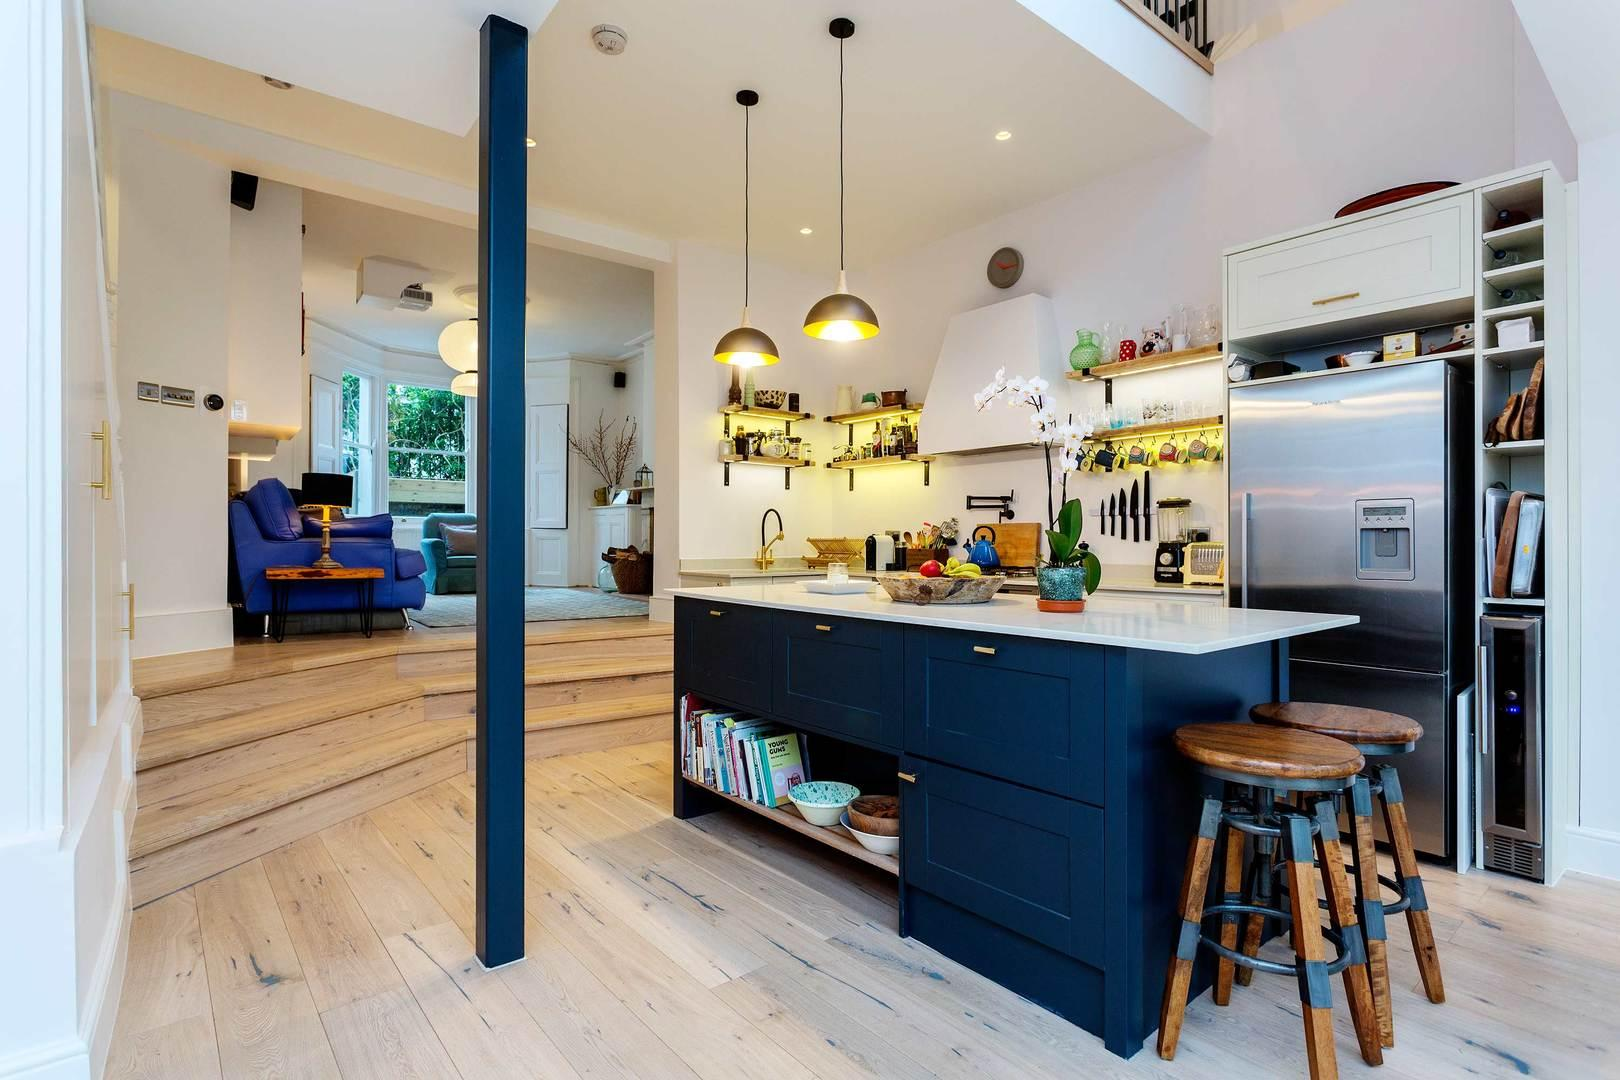 Property Image 2 - 4 bedroom Dalston House with Excellent Social Spaces